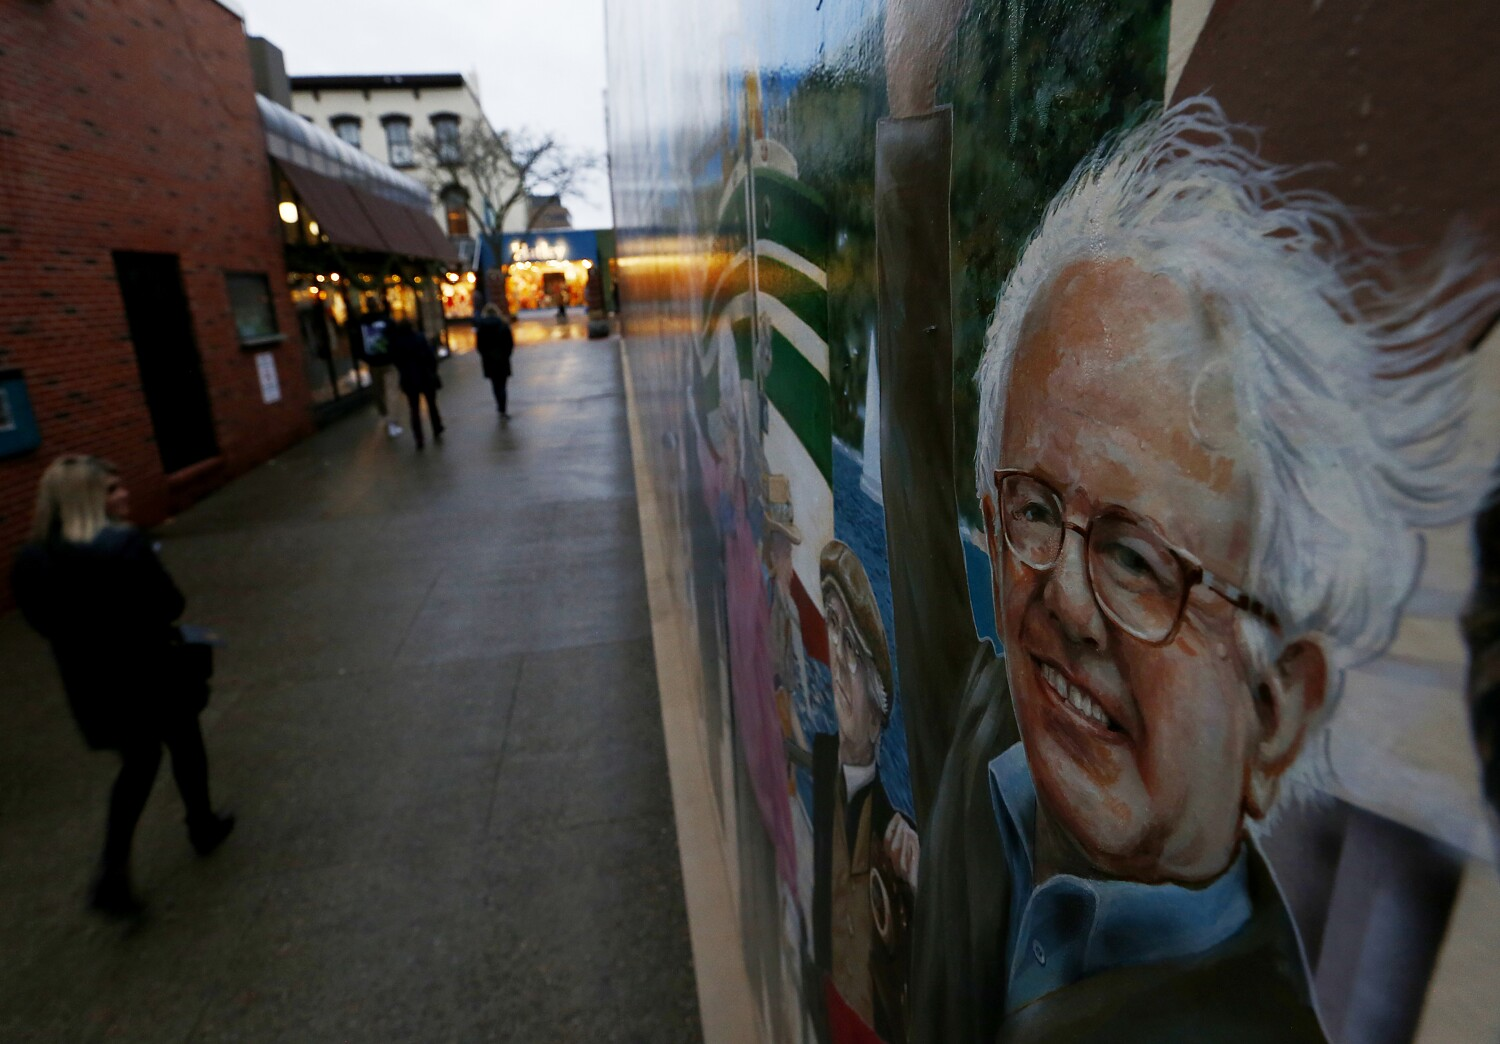 Bernie Sanders shaped this small city, and it gave him a moonshot to the national stage